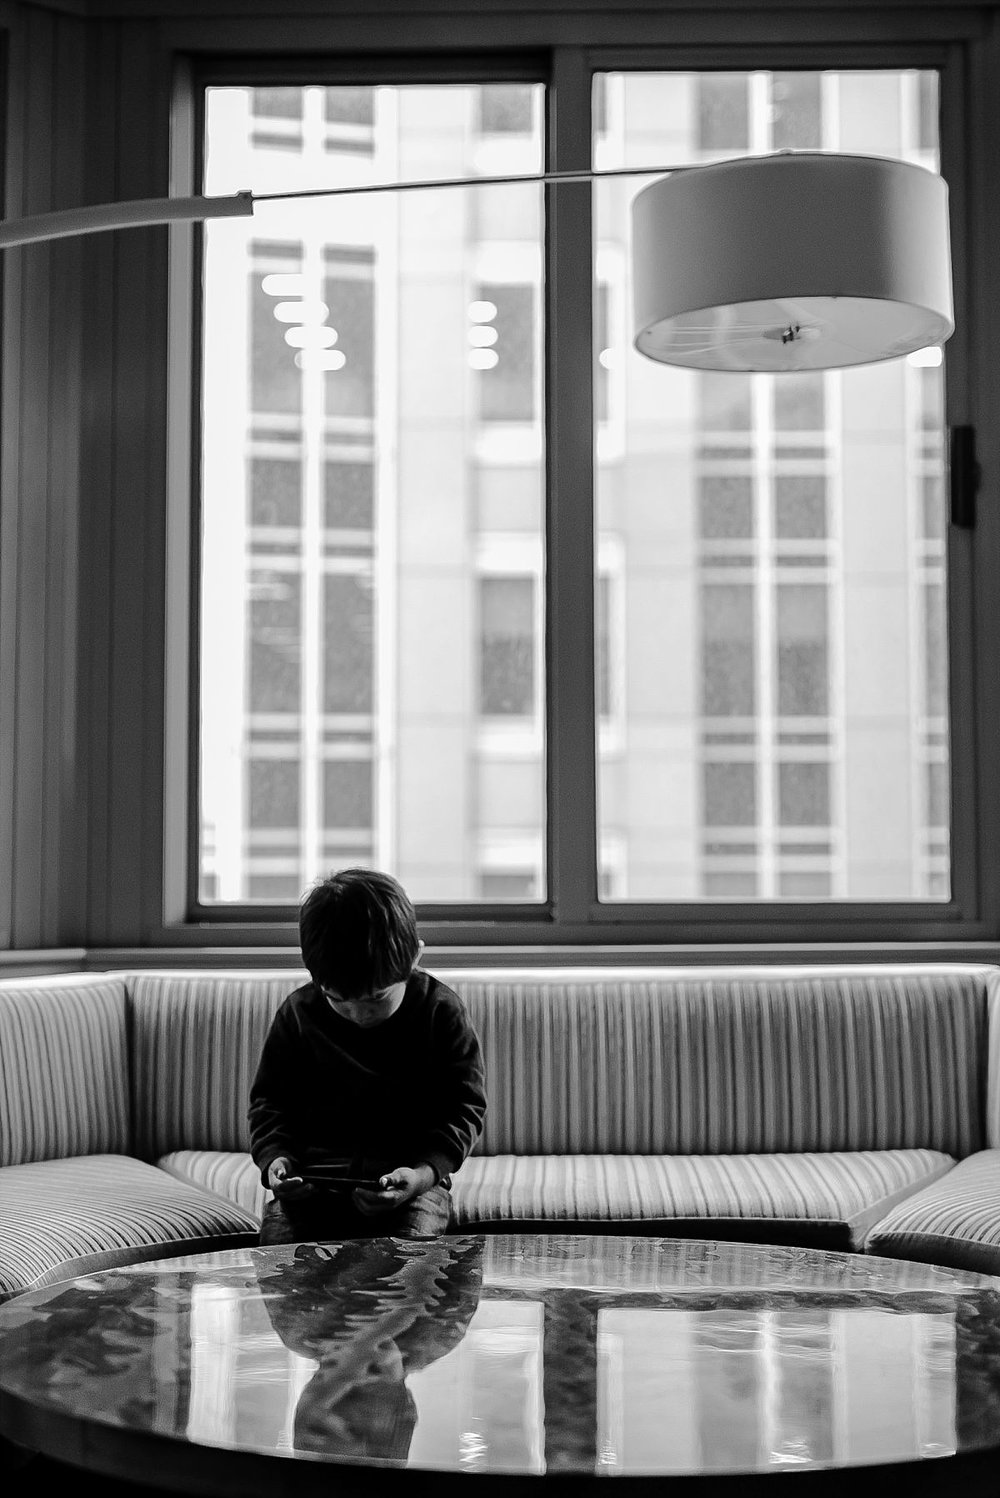 son playing iphone while waiting for mom and daughter to get ready to go outside. image taken by nyc family photographer krystil mcdowall